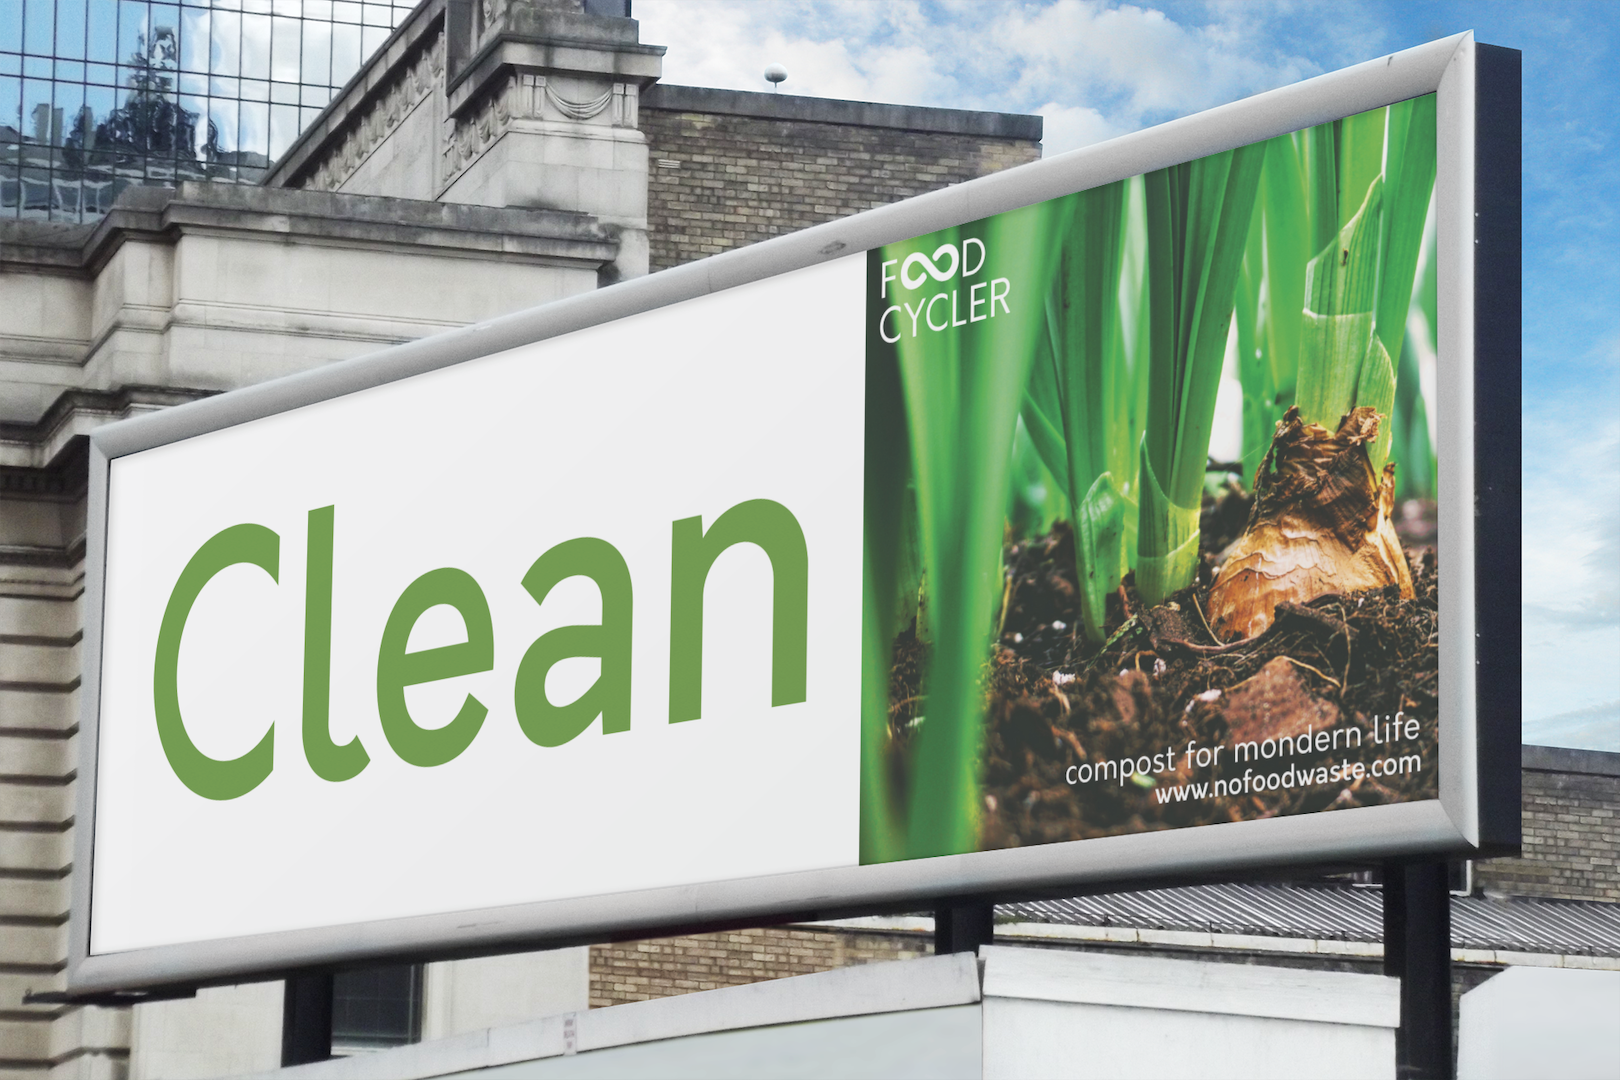 mockup-of-a-billboard-placed-on-a-roof-2882-el1